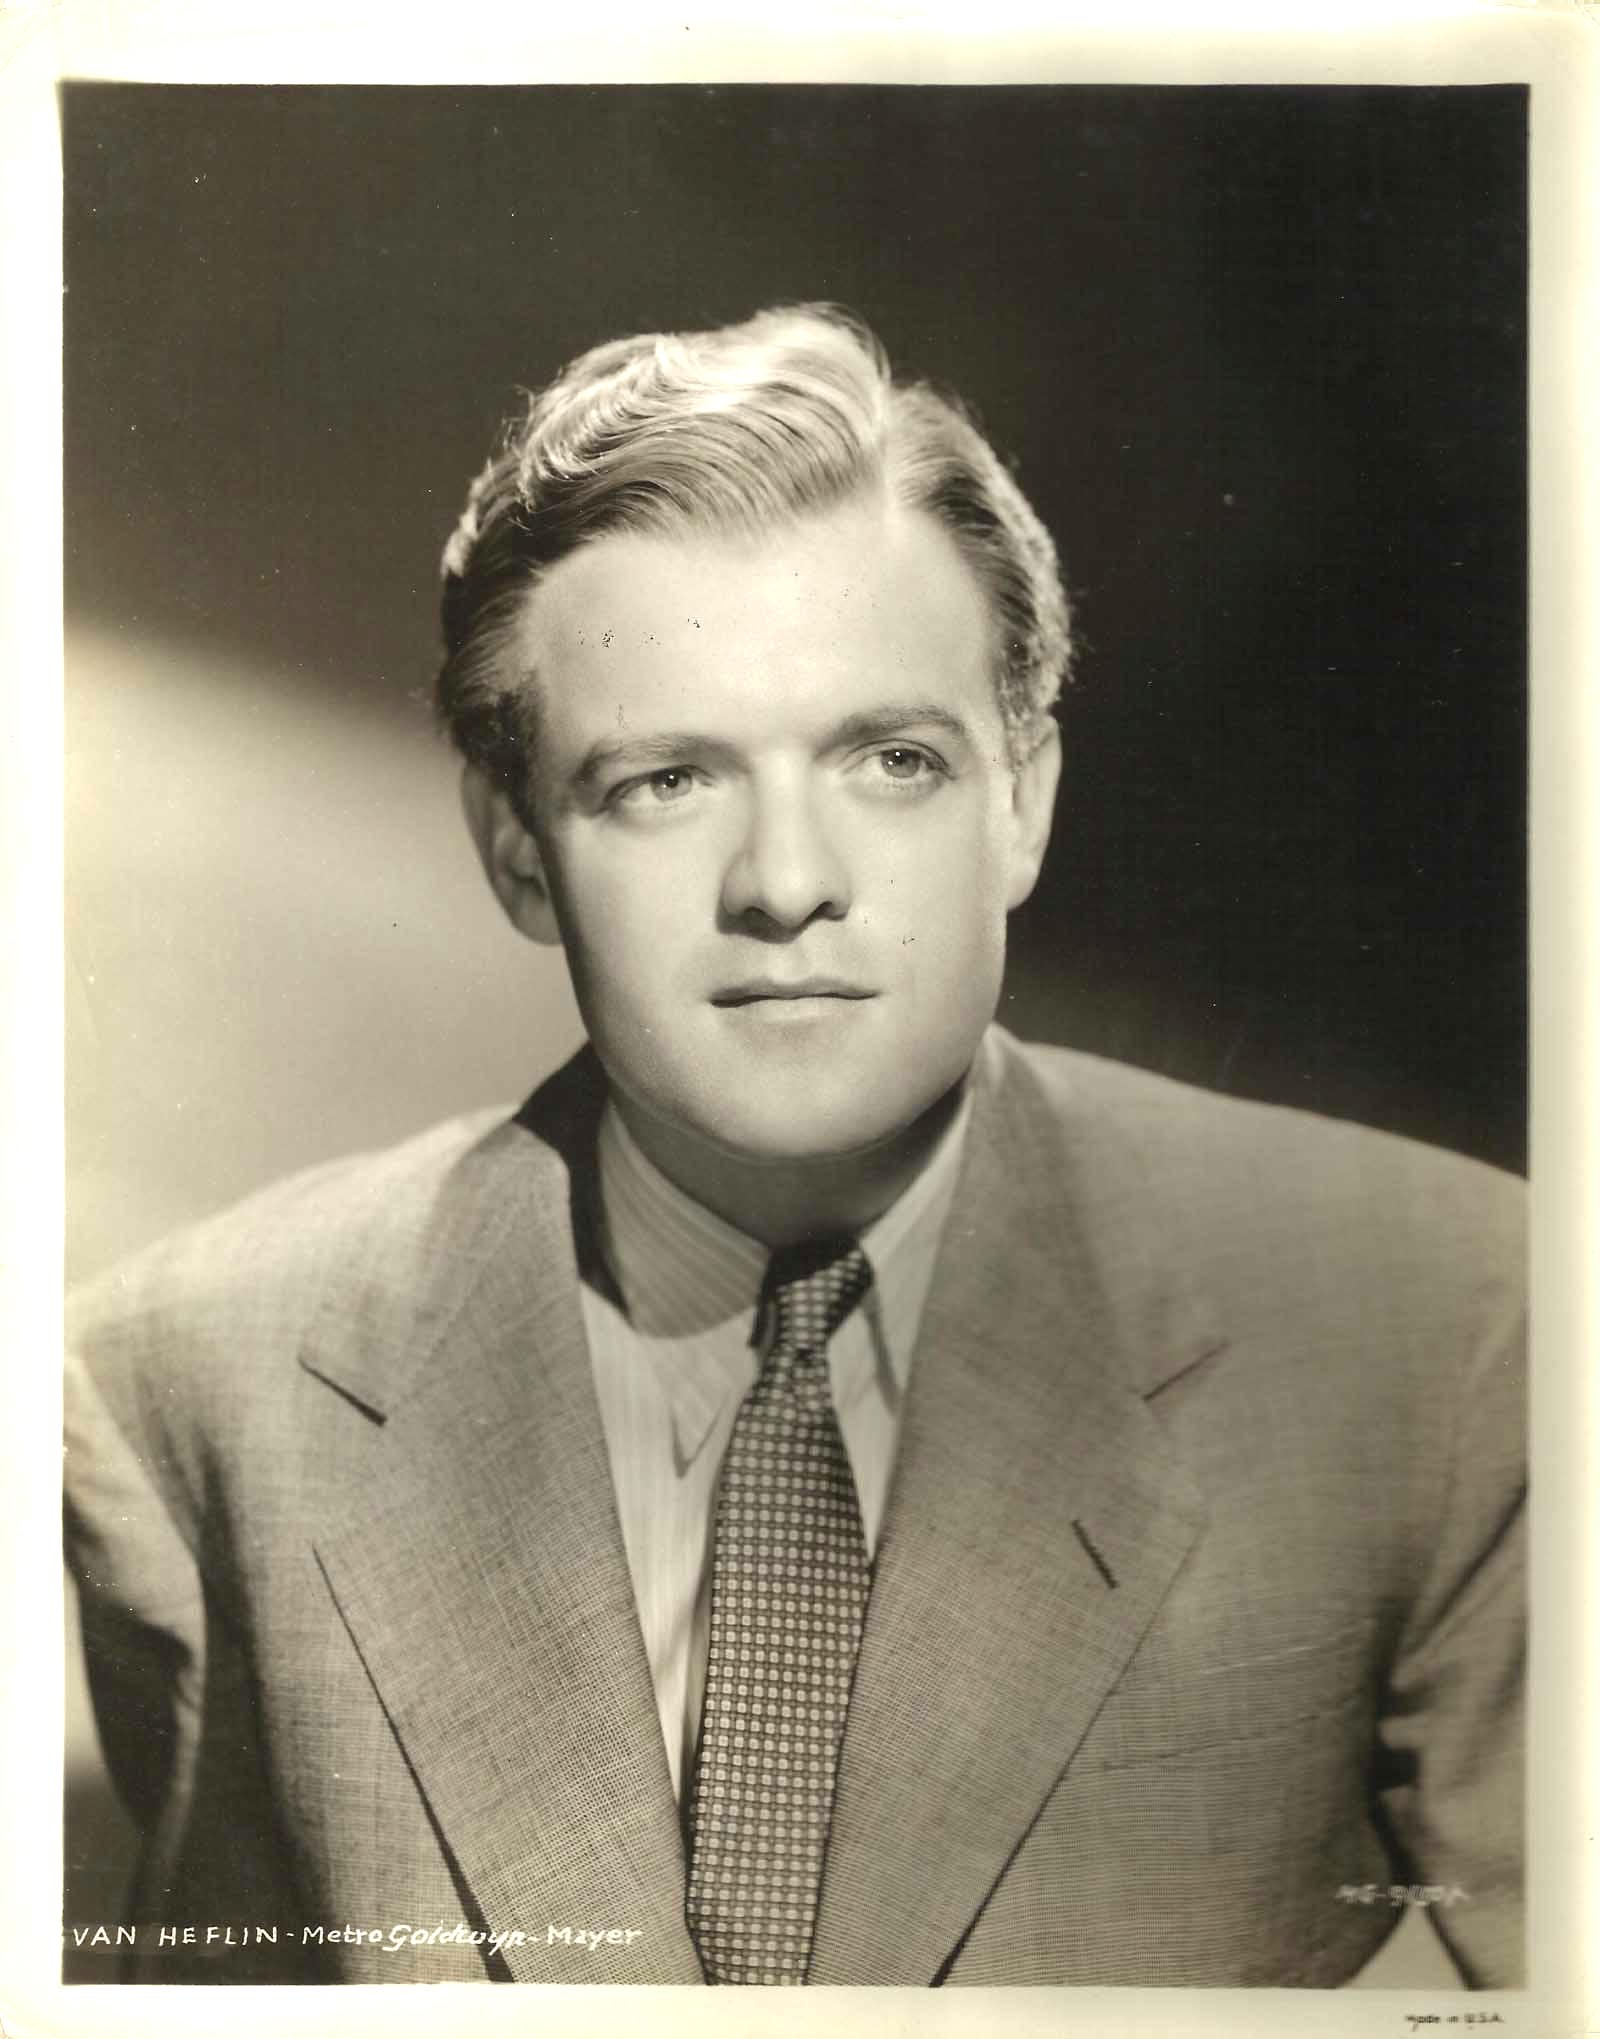 van heflin find a gravevan heflin imdb, van heflin, van heflin grave, van heflin bio, van heflin relationships, van heflin filmography, van heflin westerns, van heflin barbara stanwyck, van heflin find a grave, van heflin movies youtube, van heflin photos, van heflin gay, van heflin películas, van heflin filmografia, van heflin western movies, van heflin net worth, van heflin the raid